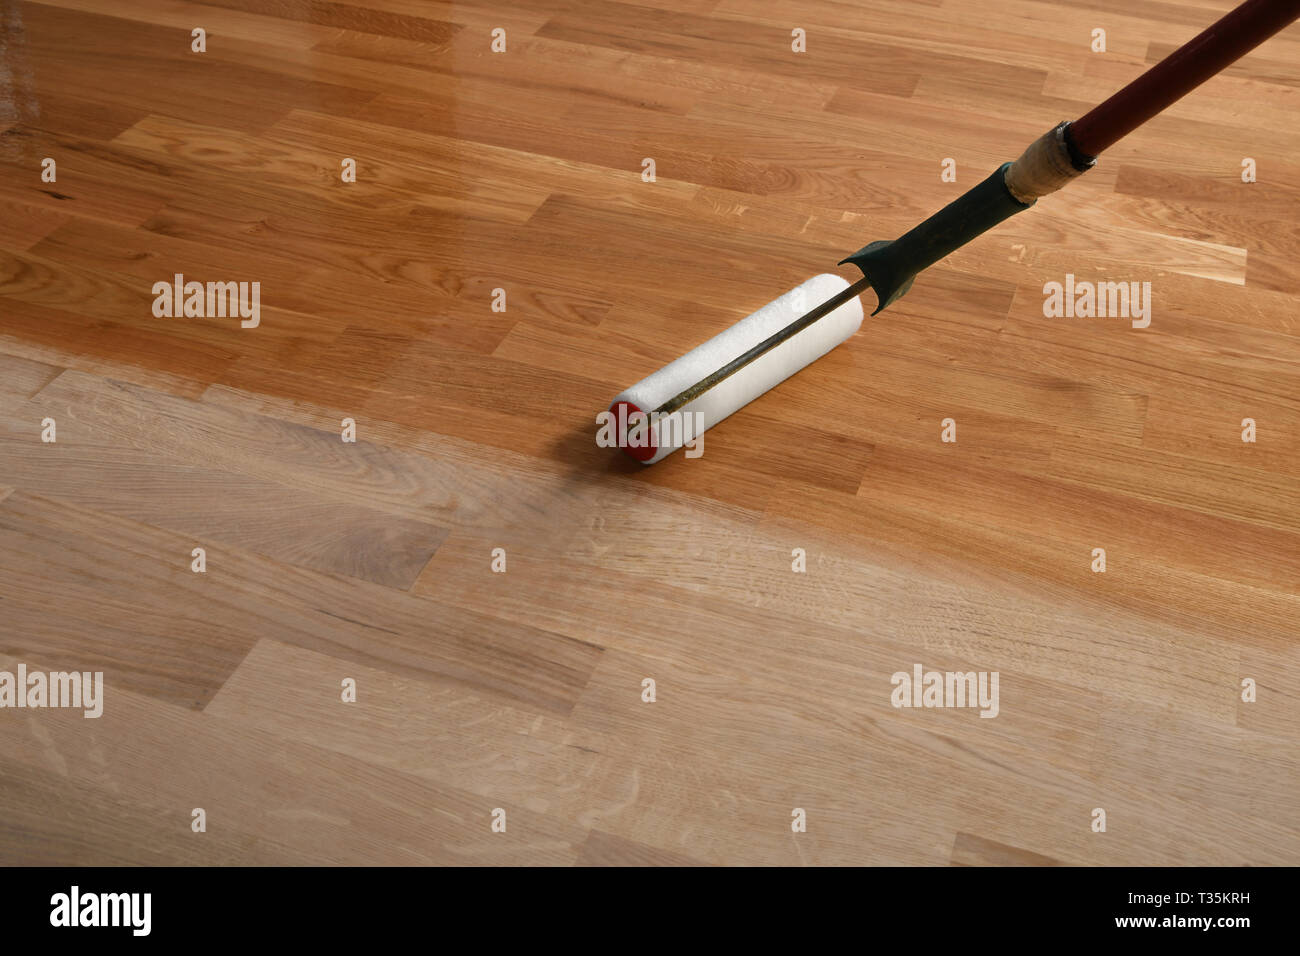 Lacquering Wood Floors Worker Uses A Roller To Coating Floors